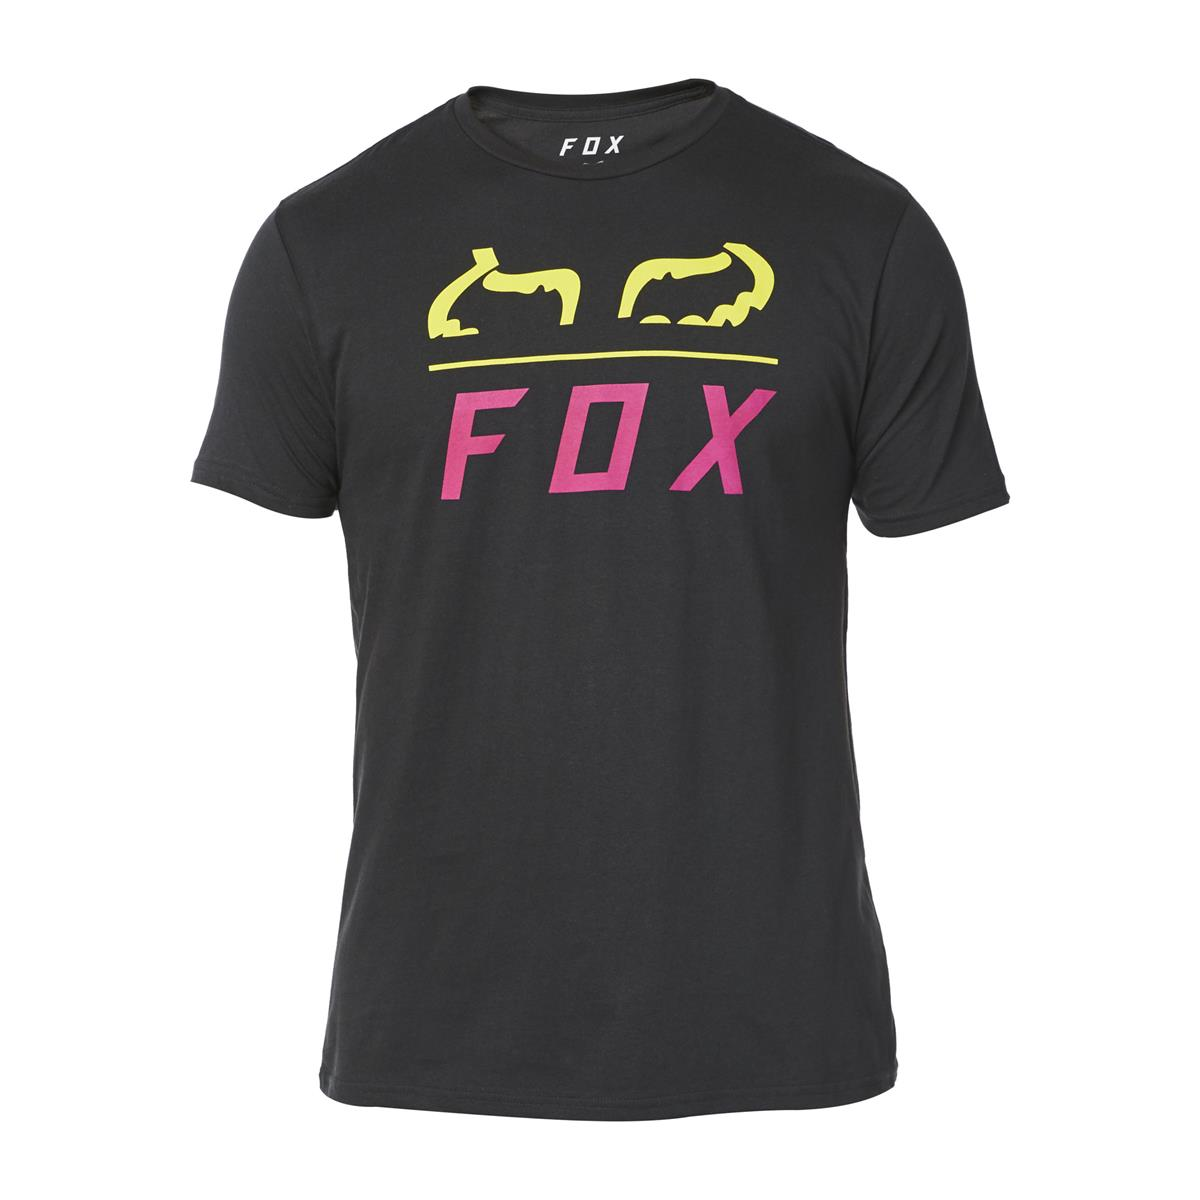 Fox T-Shirt Furnace Limited Edition A1 - Schwarz/Gelb